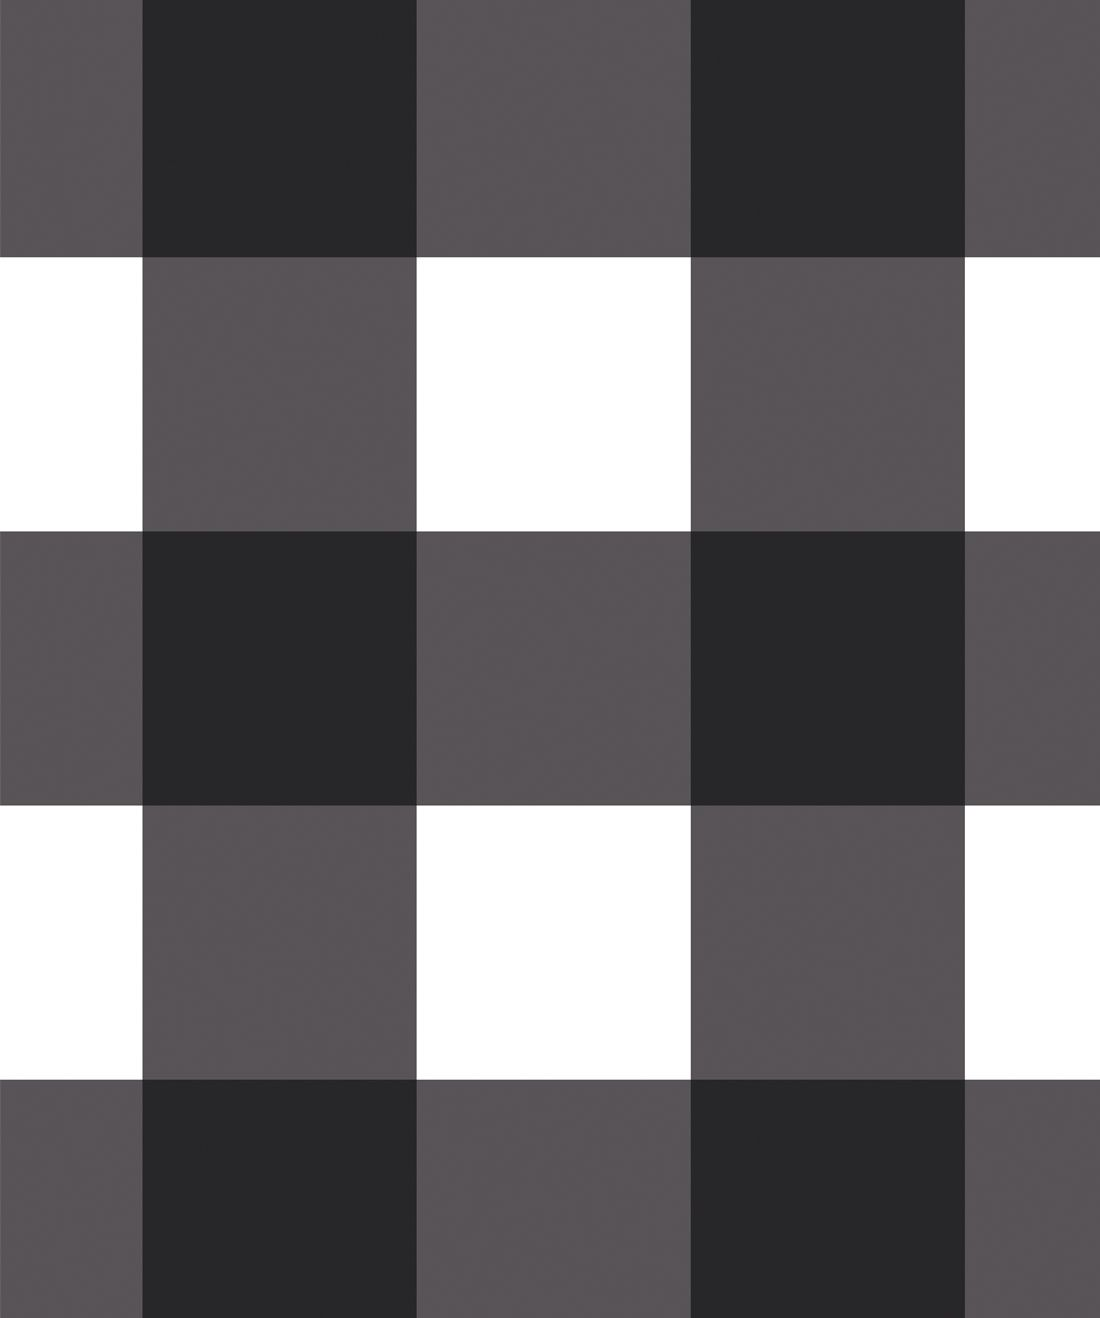 Mel's Buffalo Check Wallpaper • Black & White Plaid Wallpaper Swatch